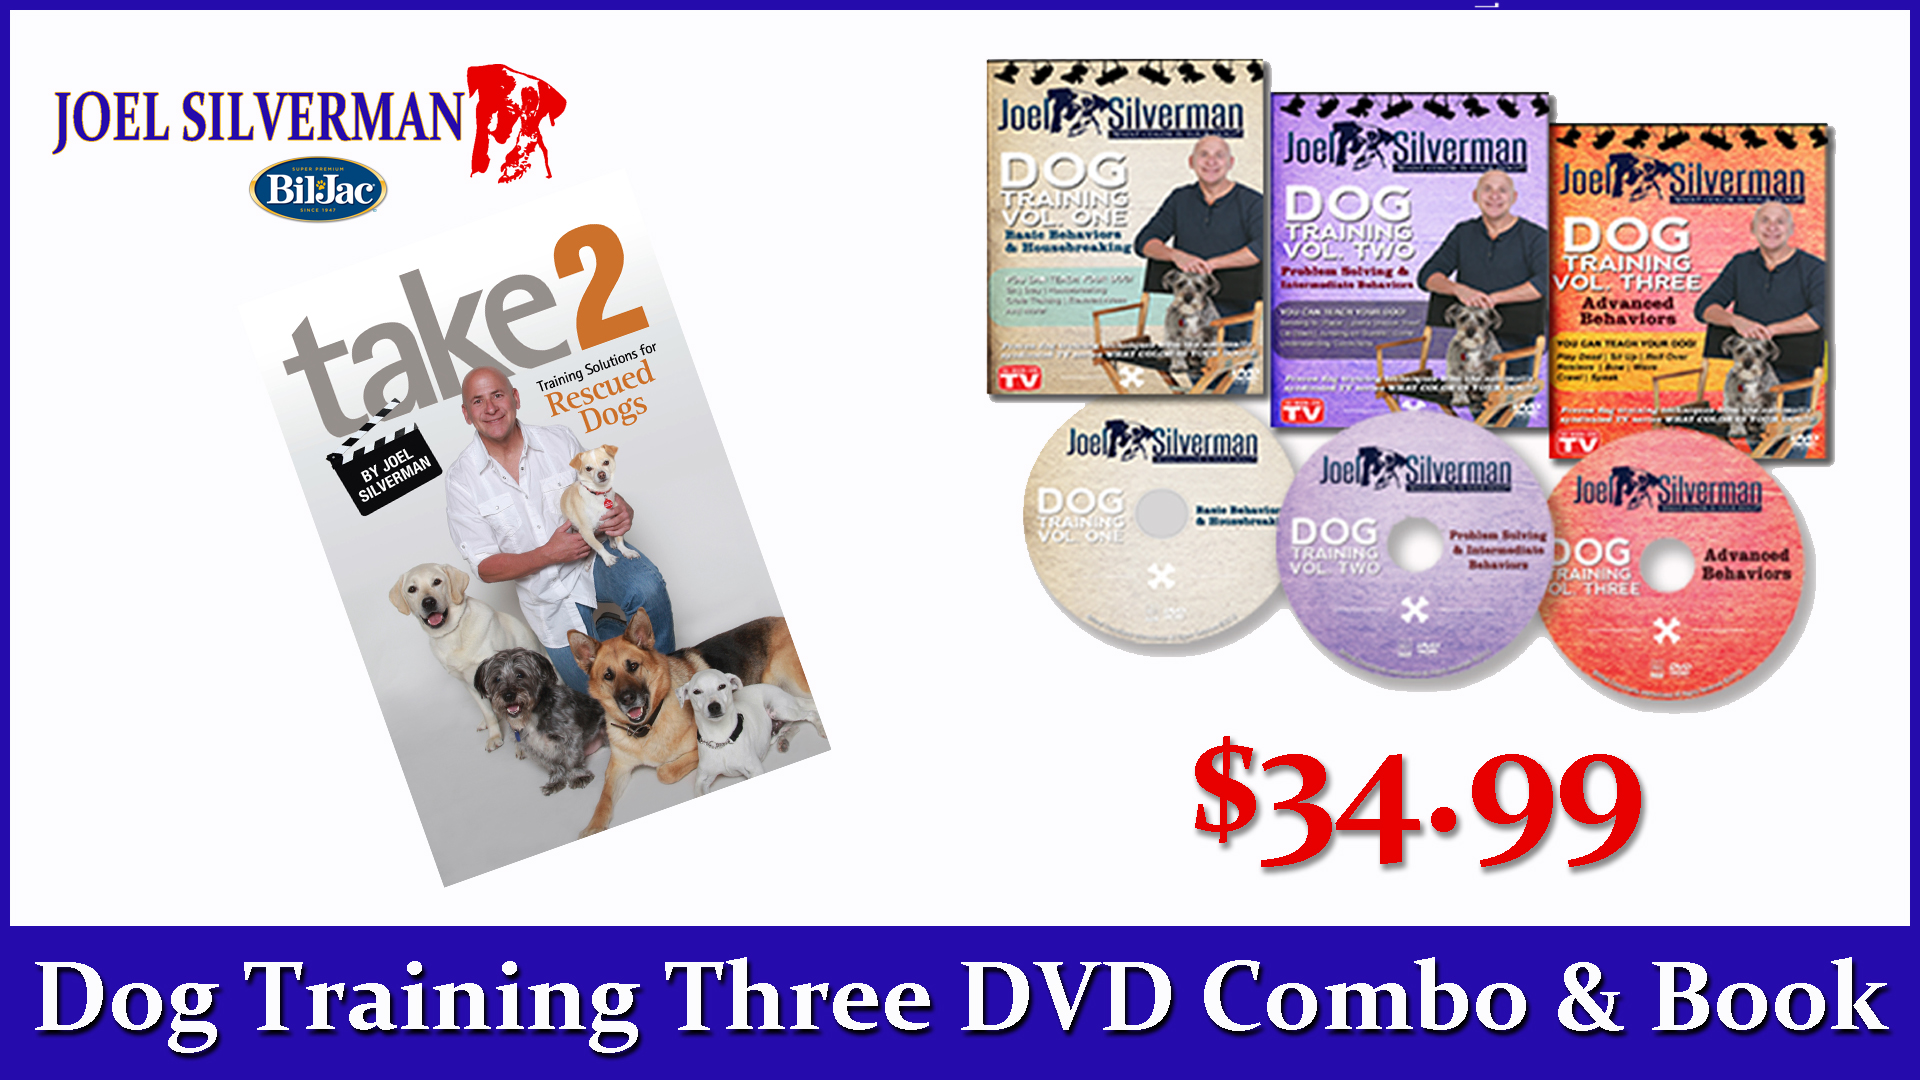 Joel Silverman's  3 DVDs   Take 2, Training Solutions .. Book